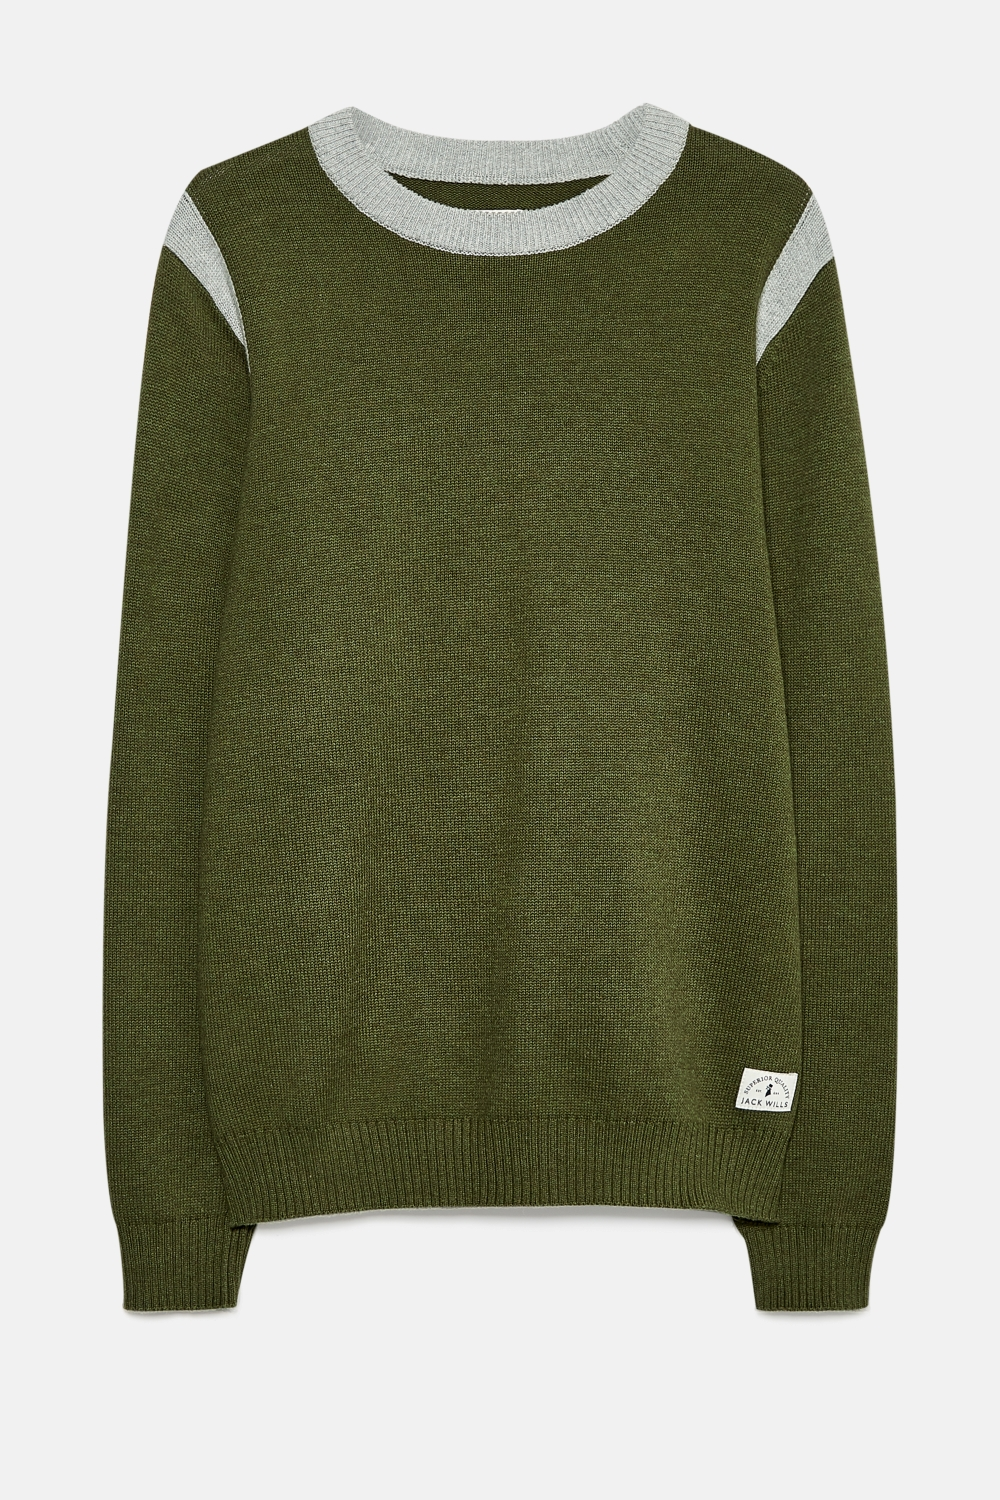 Jack Wills Olive WELLSBOURNE CONTRAST CREW NECK JUMPER